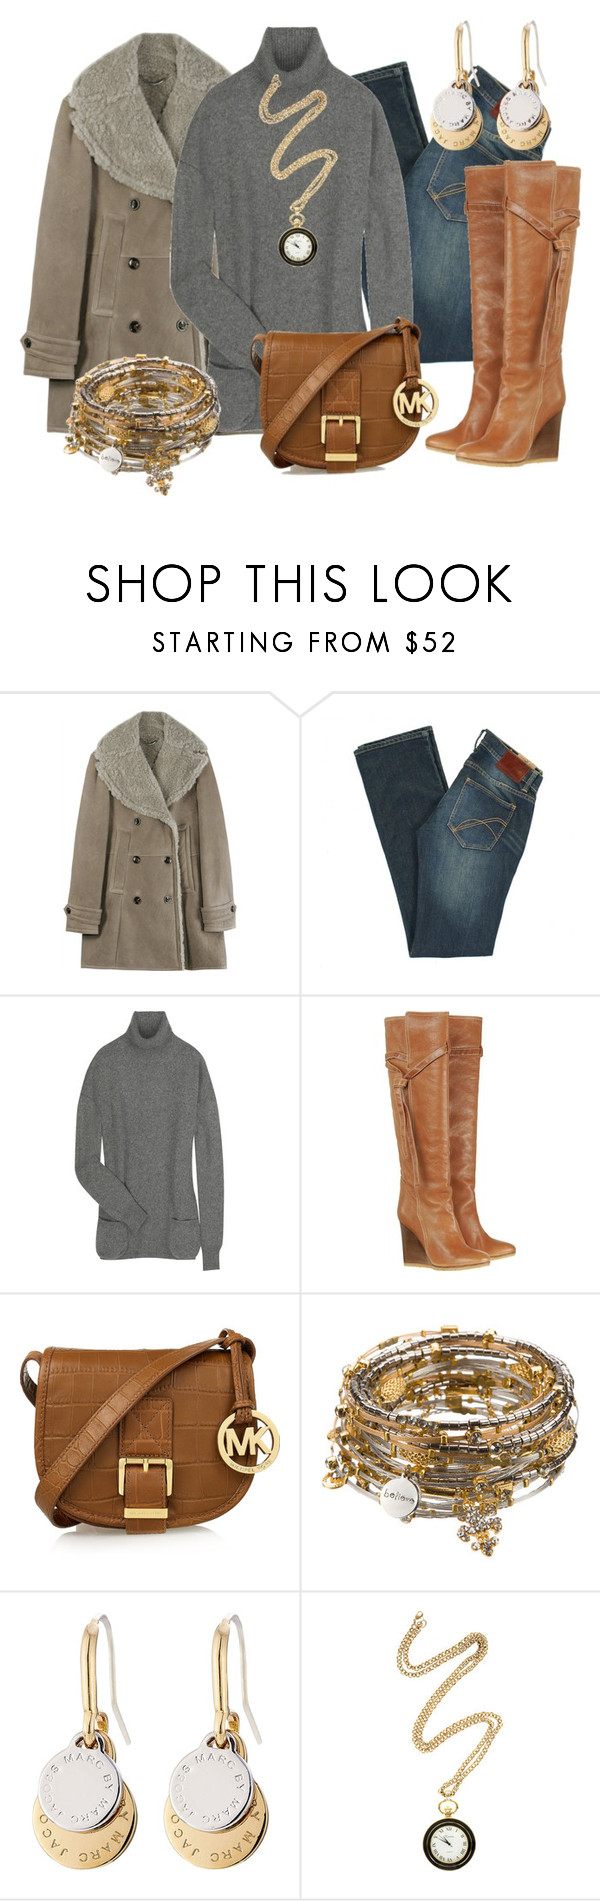 """""""CASUAL"""" by outfits-de-moda2 ❤ liked on Polyvore featuring Burberry, French Connection, Chloé, MICHAEL Michael Kors, Seasonal Whispers, Marc by Marc Jacobs and Kara by Kara Ross"""